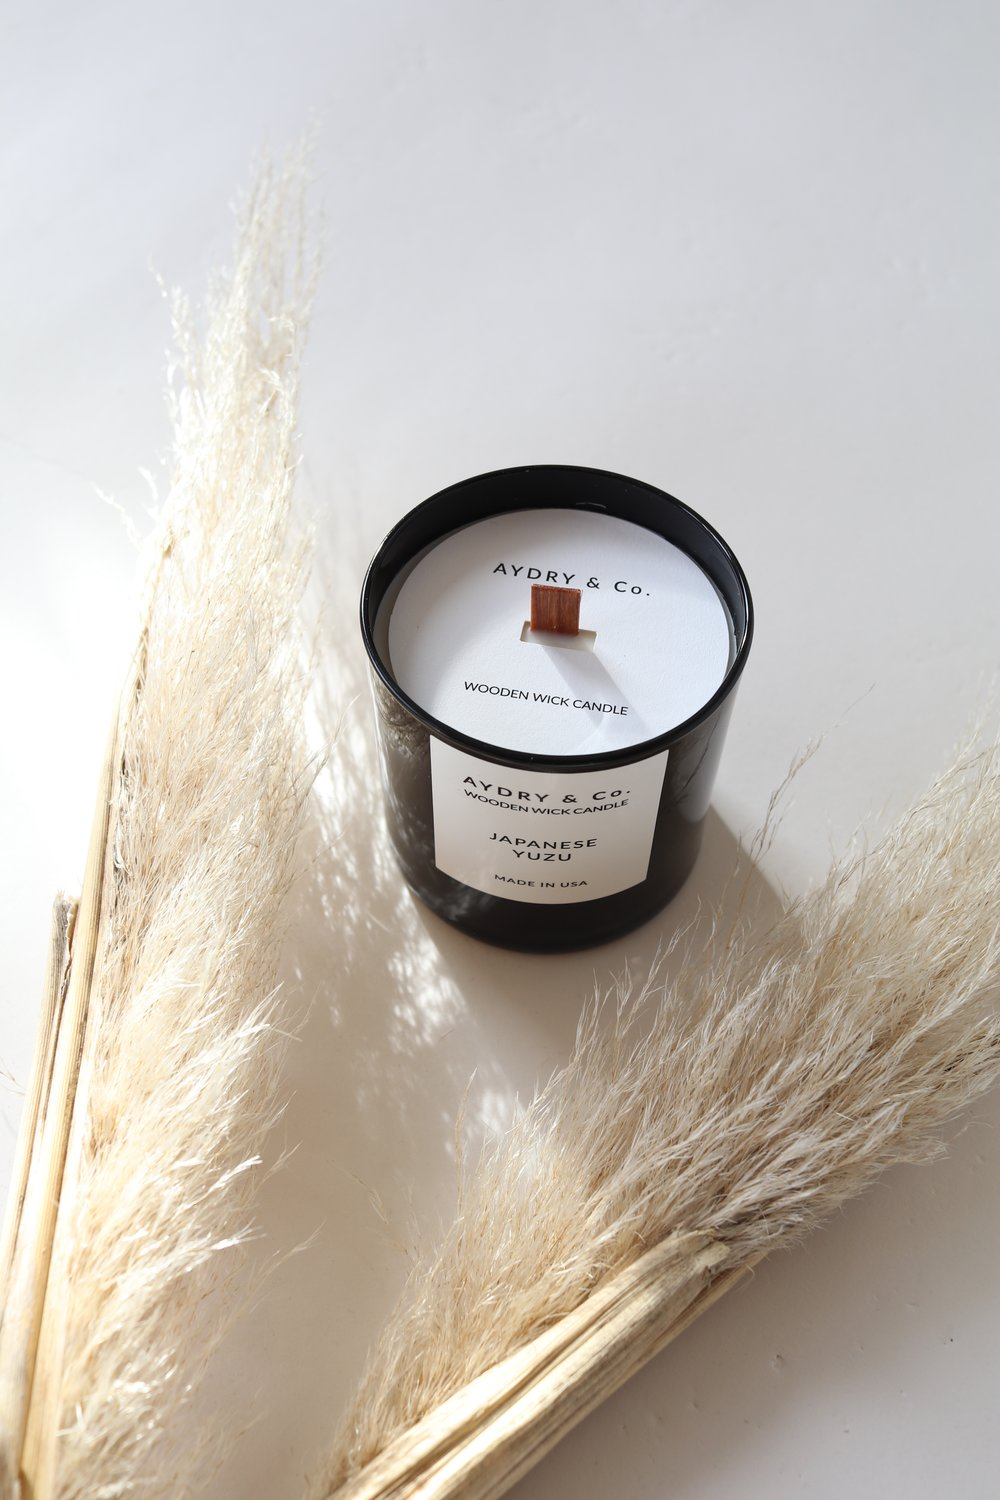 AYDRY & Co. is a LA-based brand that presents handcrafted candles and beauty goods with a sophisticated blend of natural and luxury. The creative director, Japanese born, AYU Carlton' s philosophy; high quality - organic & vegan - modern & minimal - simplicity, reflecting her own formula and design. Her sophisticated sensibility has applied in every step of developing the brand.      SHOP THE ENTIRE LINE